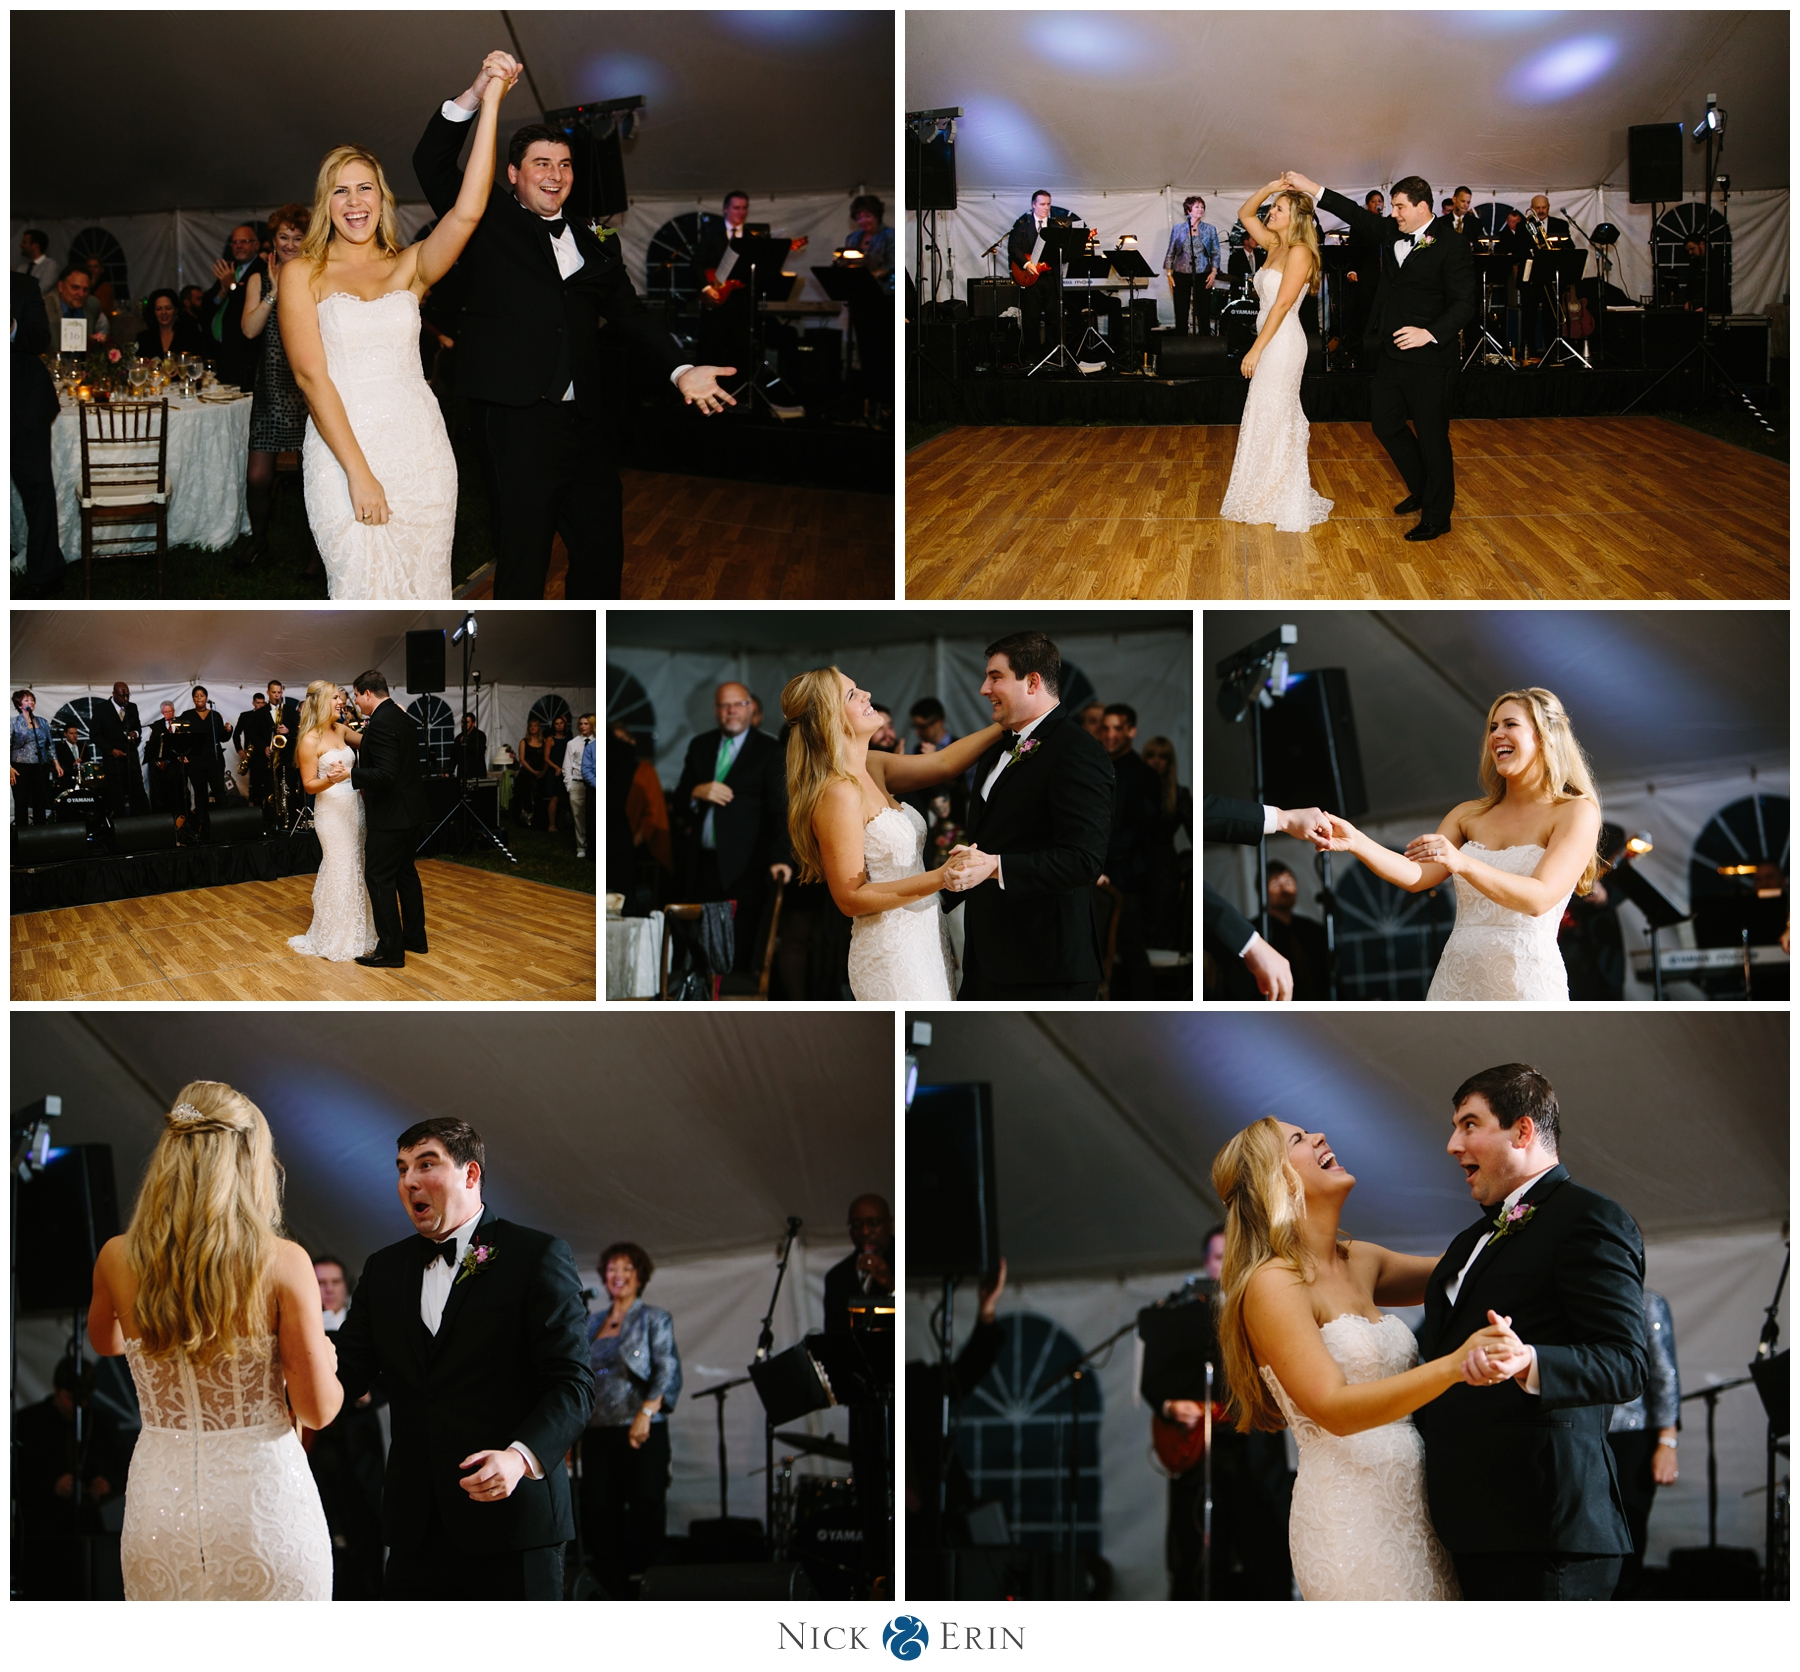 donner_photography_leesburg-virginia-wedding_erin-stuart_0021